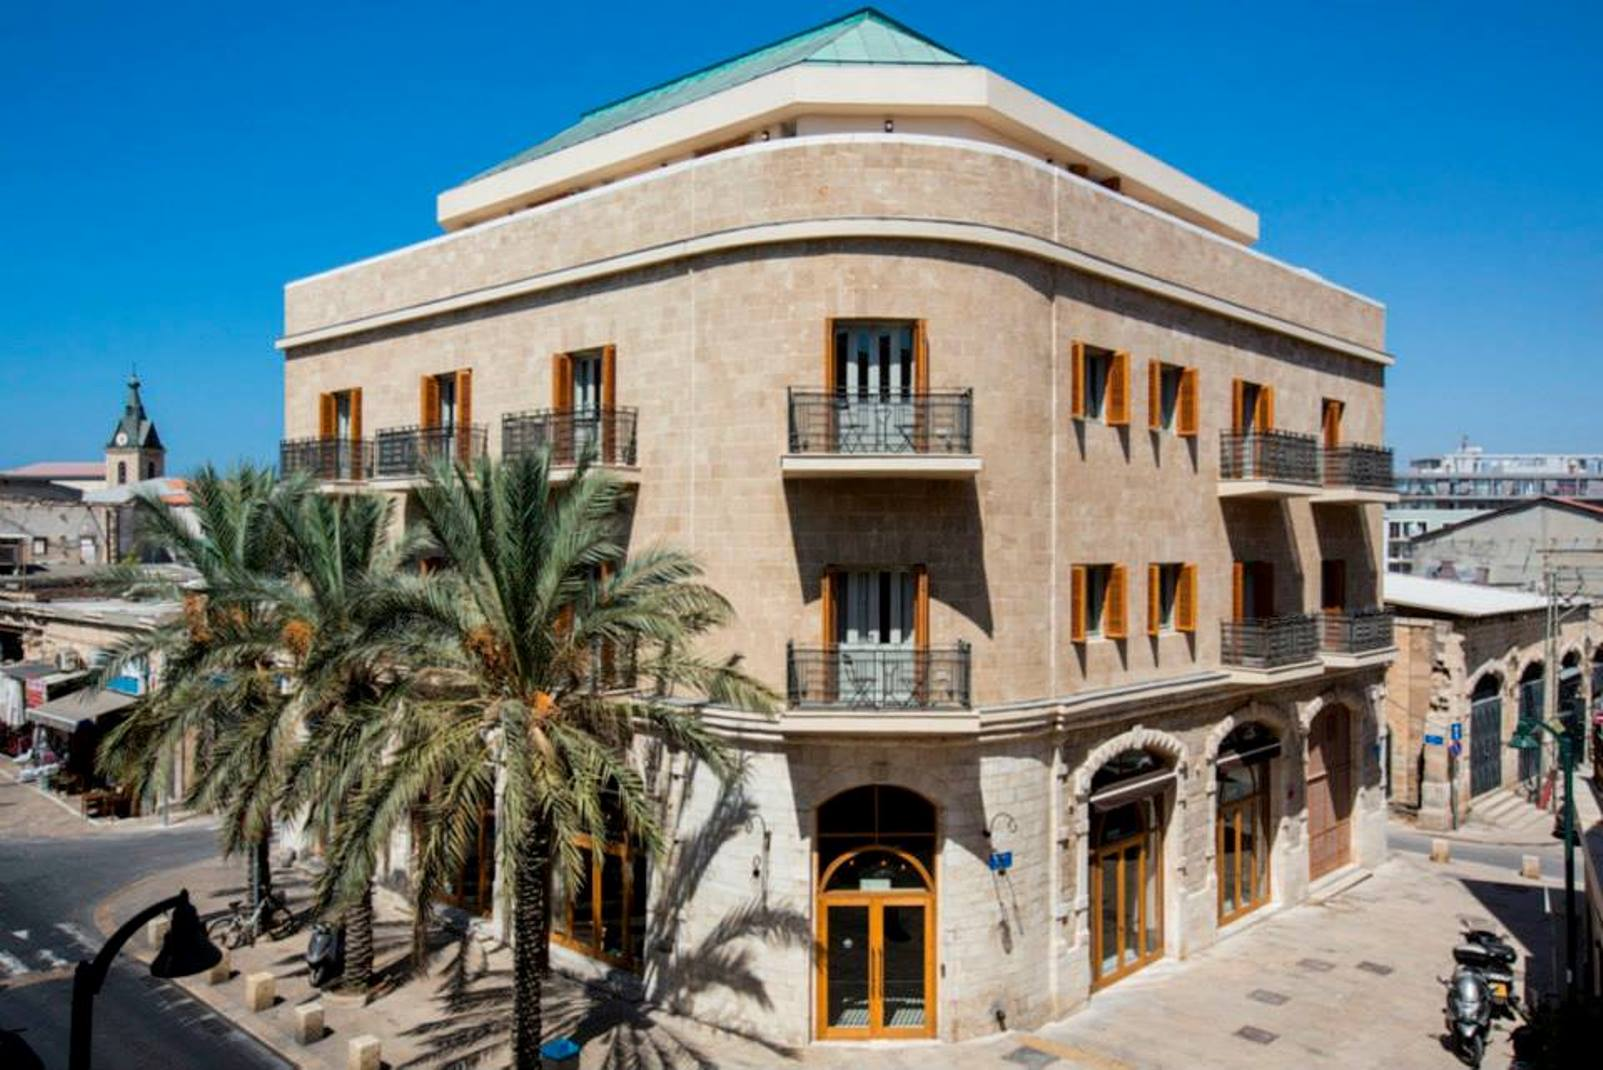 Market House Hotel, Jaffa. Photo: courtesy